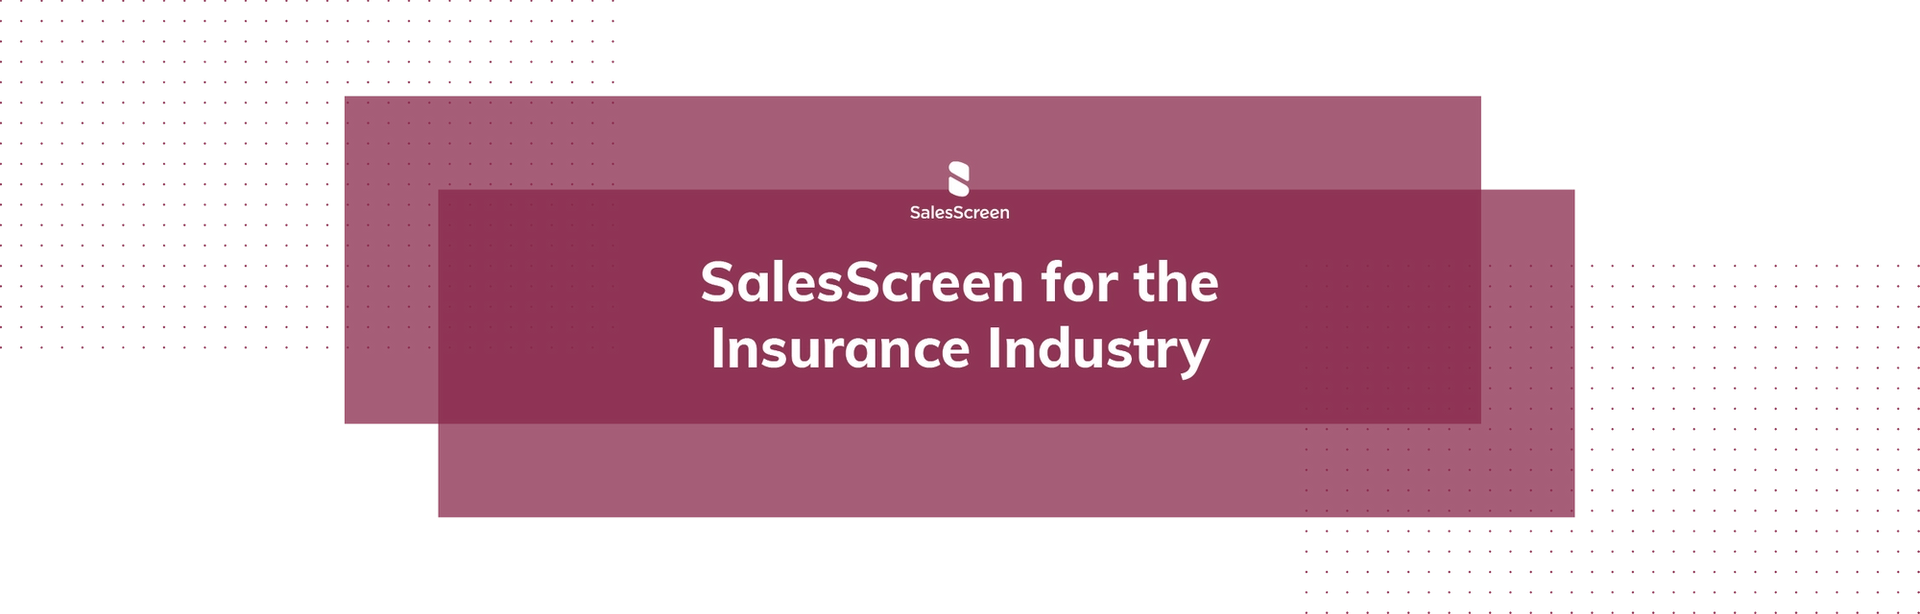 SalesScreen for the Insurance Industry